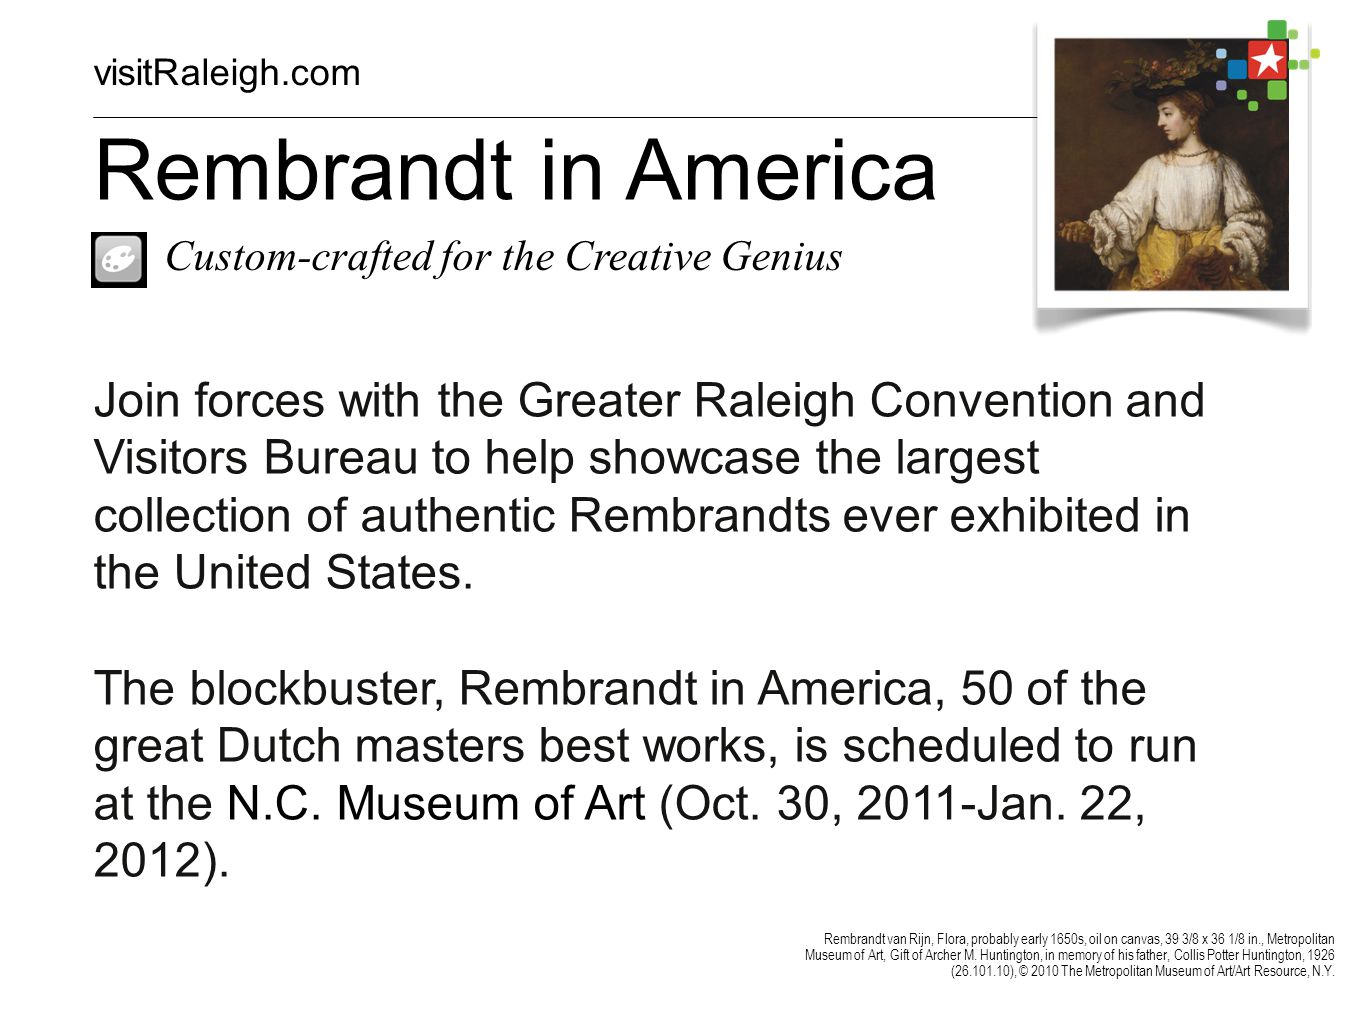 Join forces with the Greater Raleigh Convention and Visitors Bureau to help showcase the largest collection of authentic Rembrandts ever exhibited in the United States.